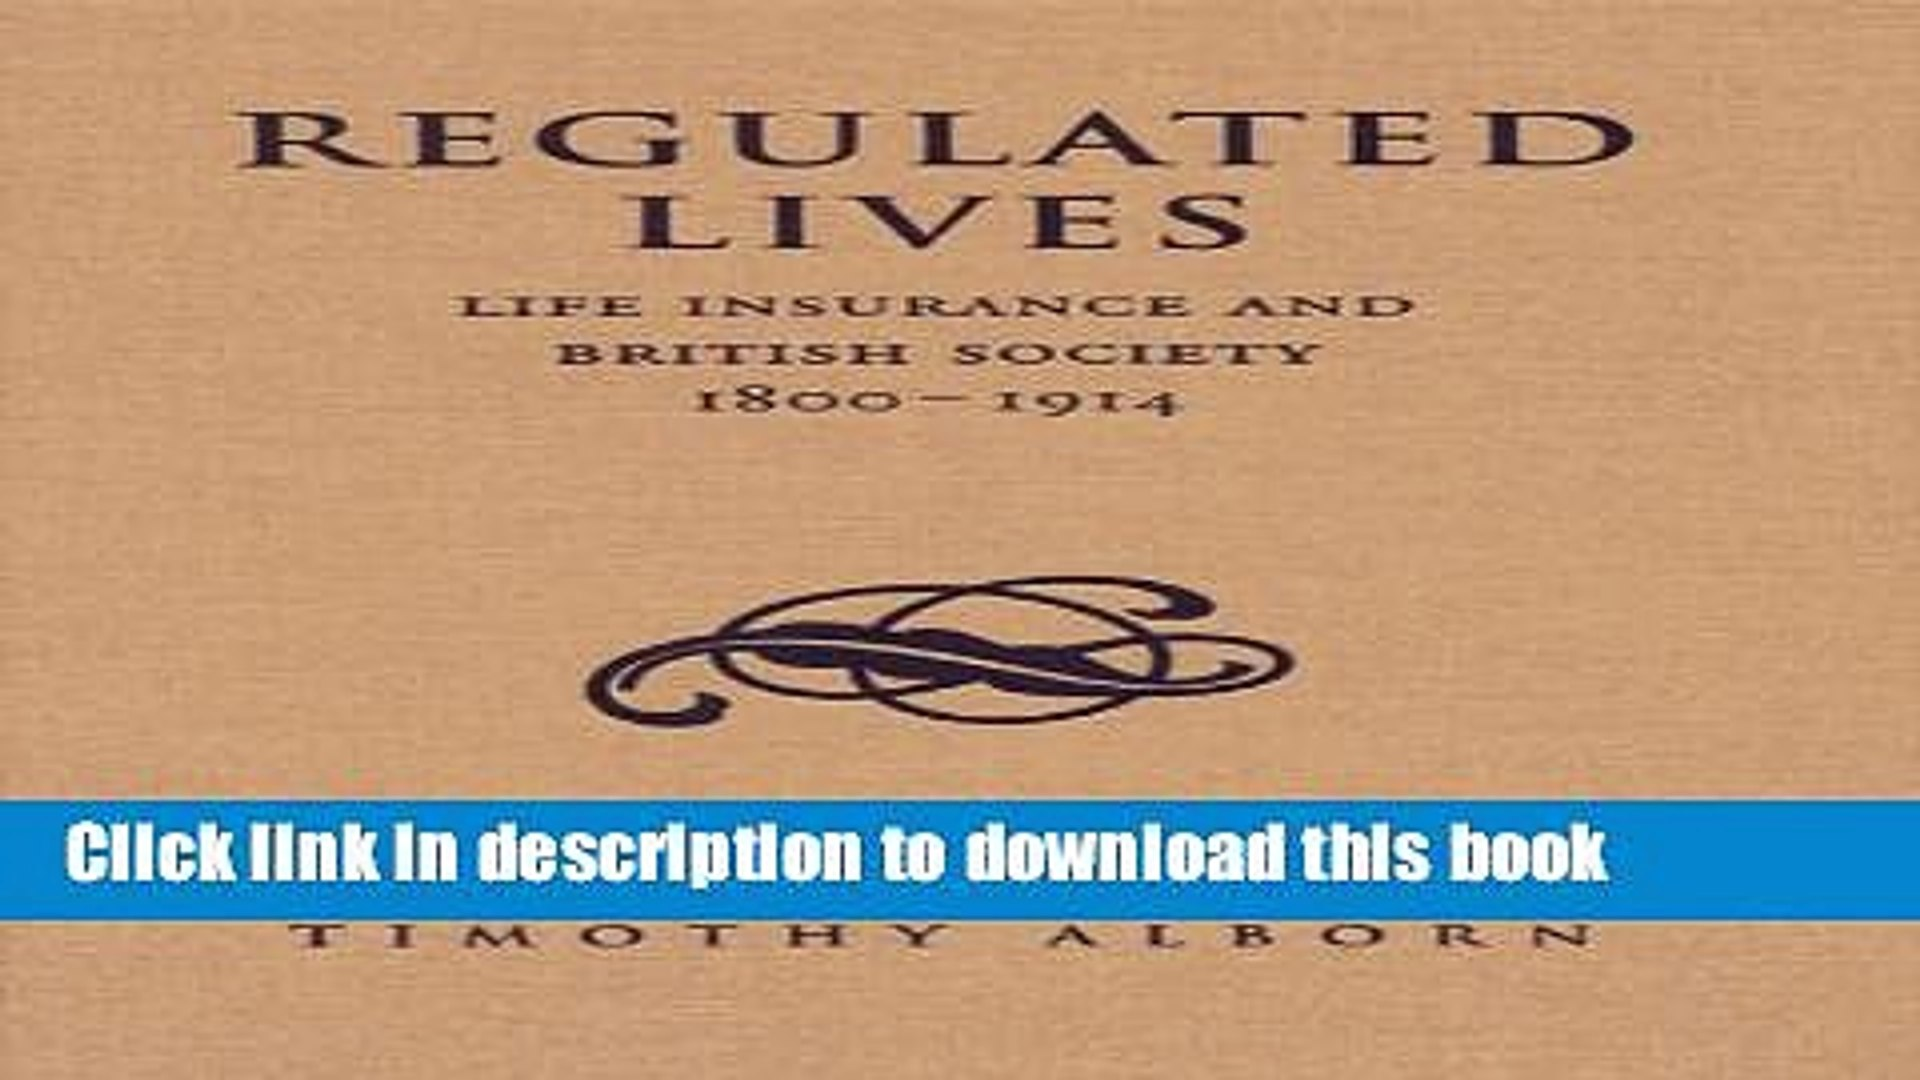 [PDF] Regulated Lives: Life Insurance and British Society, 1800-1914 Download Online